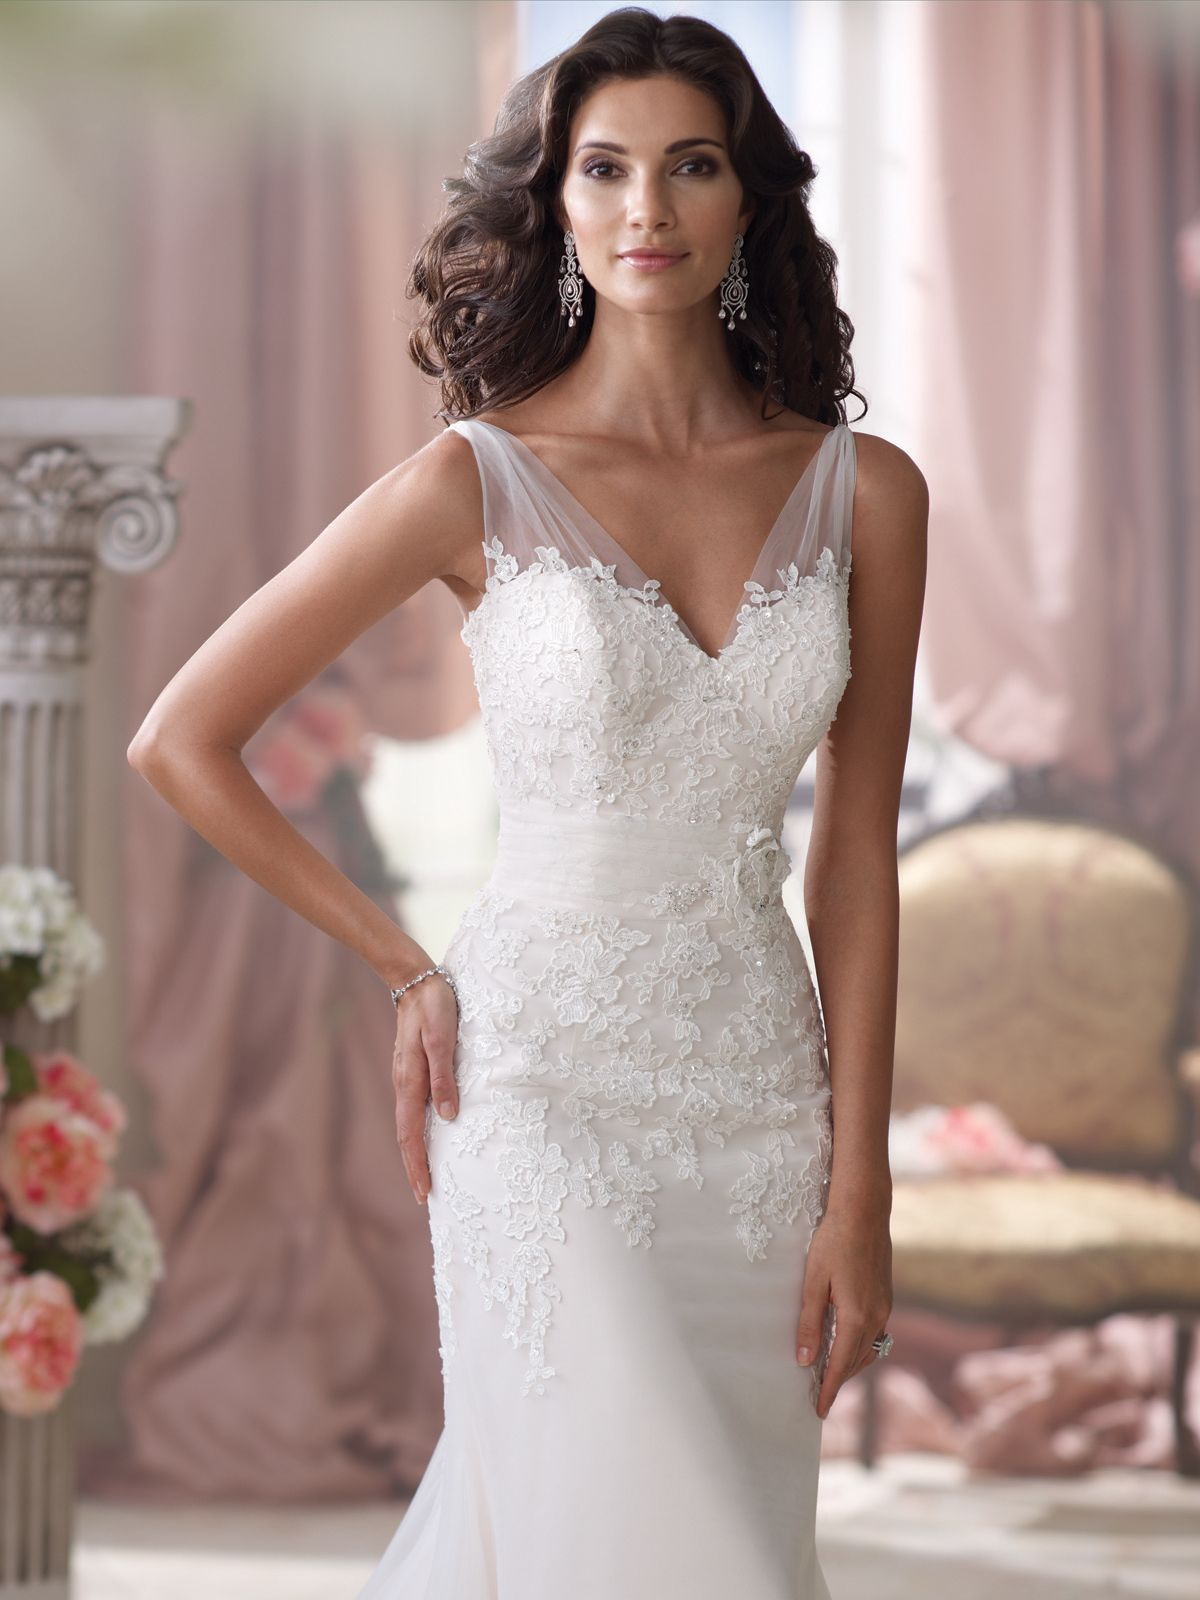 Wedding dresses 2017 spring 2018 david tutera wedding dress 114284 david tutera for mon cheri wedding dresses 2013 and bridal ombrellifo Image collections